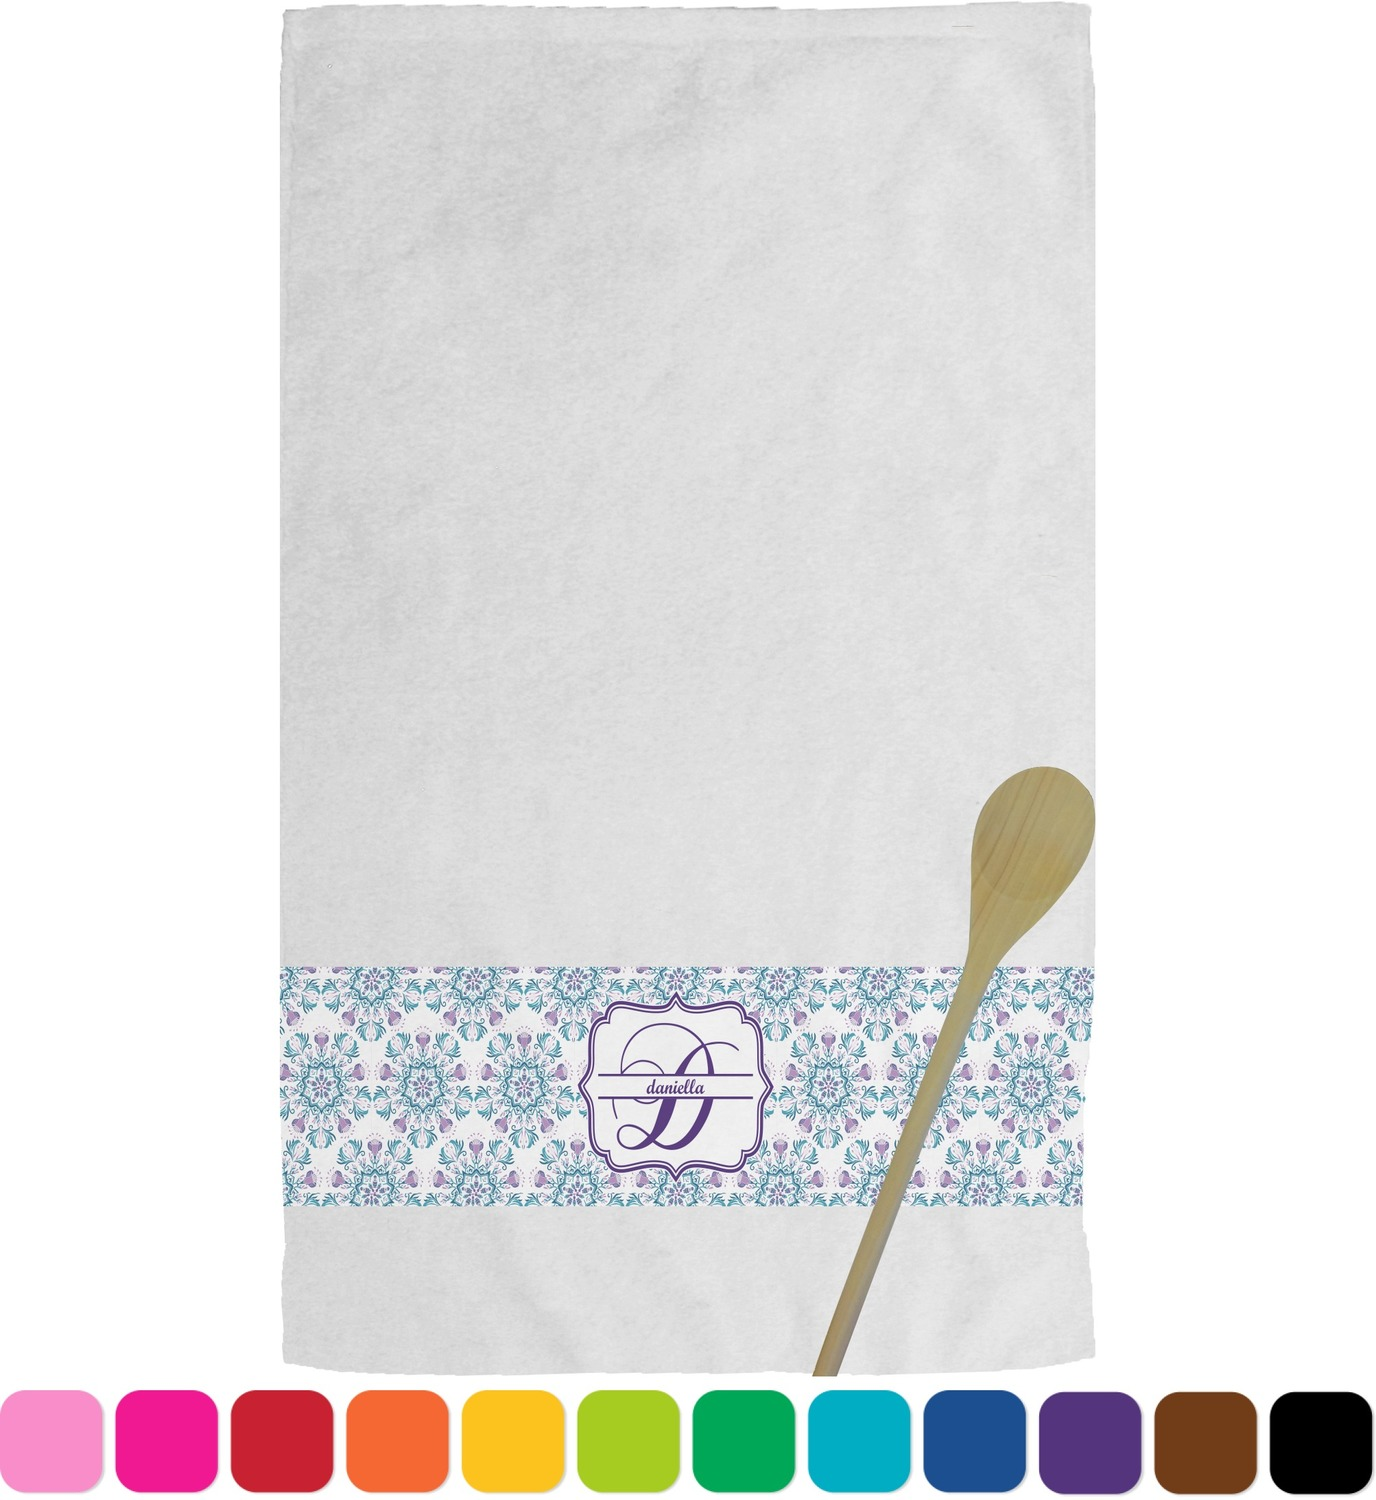 personalized kitchen towels island table with chairs mandala floral towel youcustomizeit